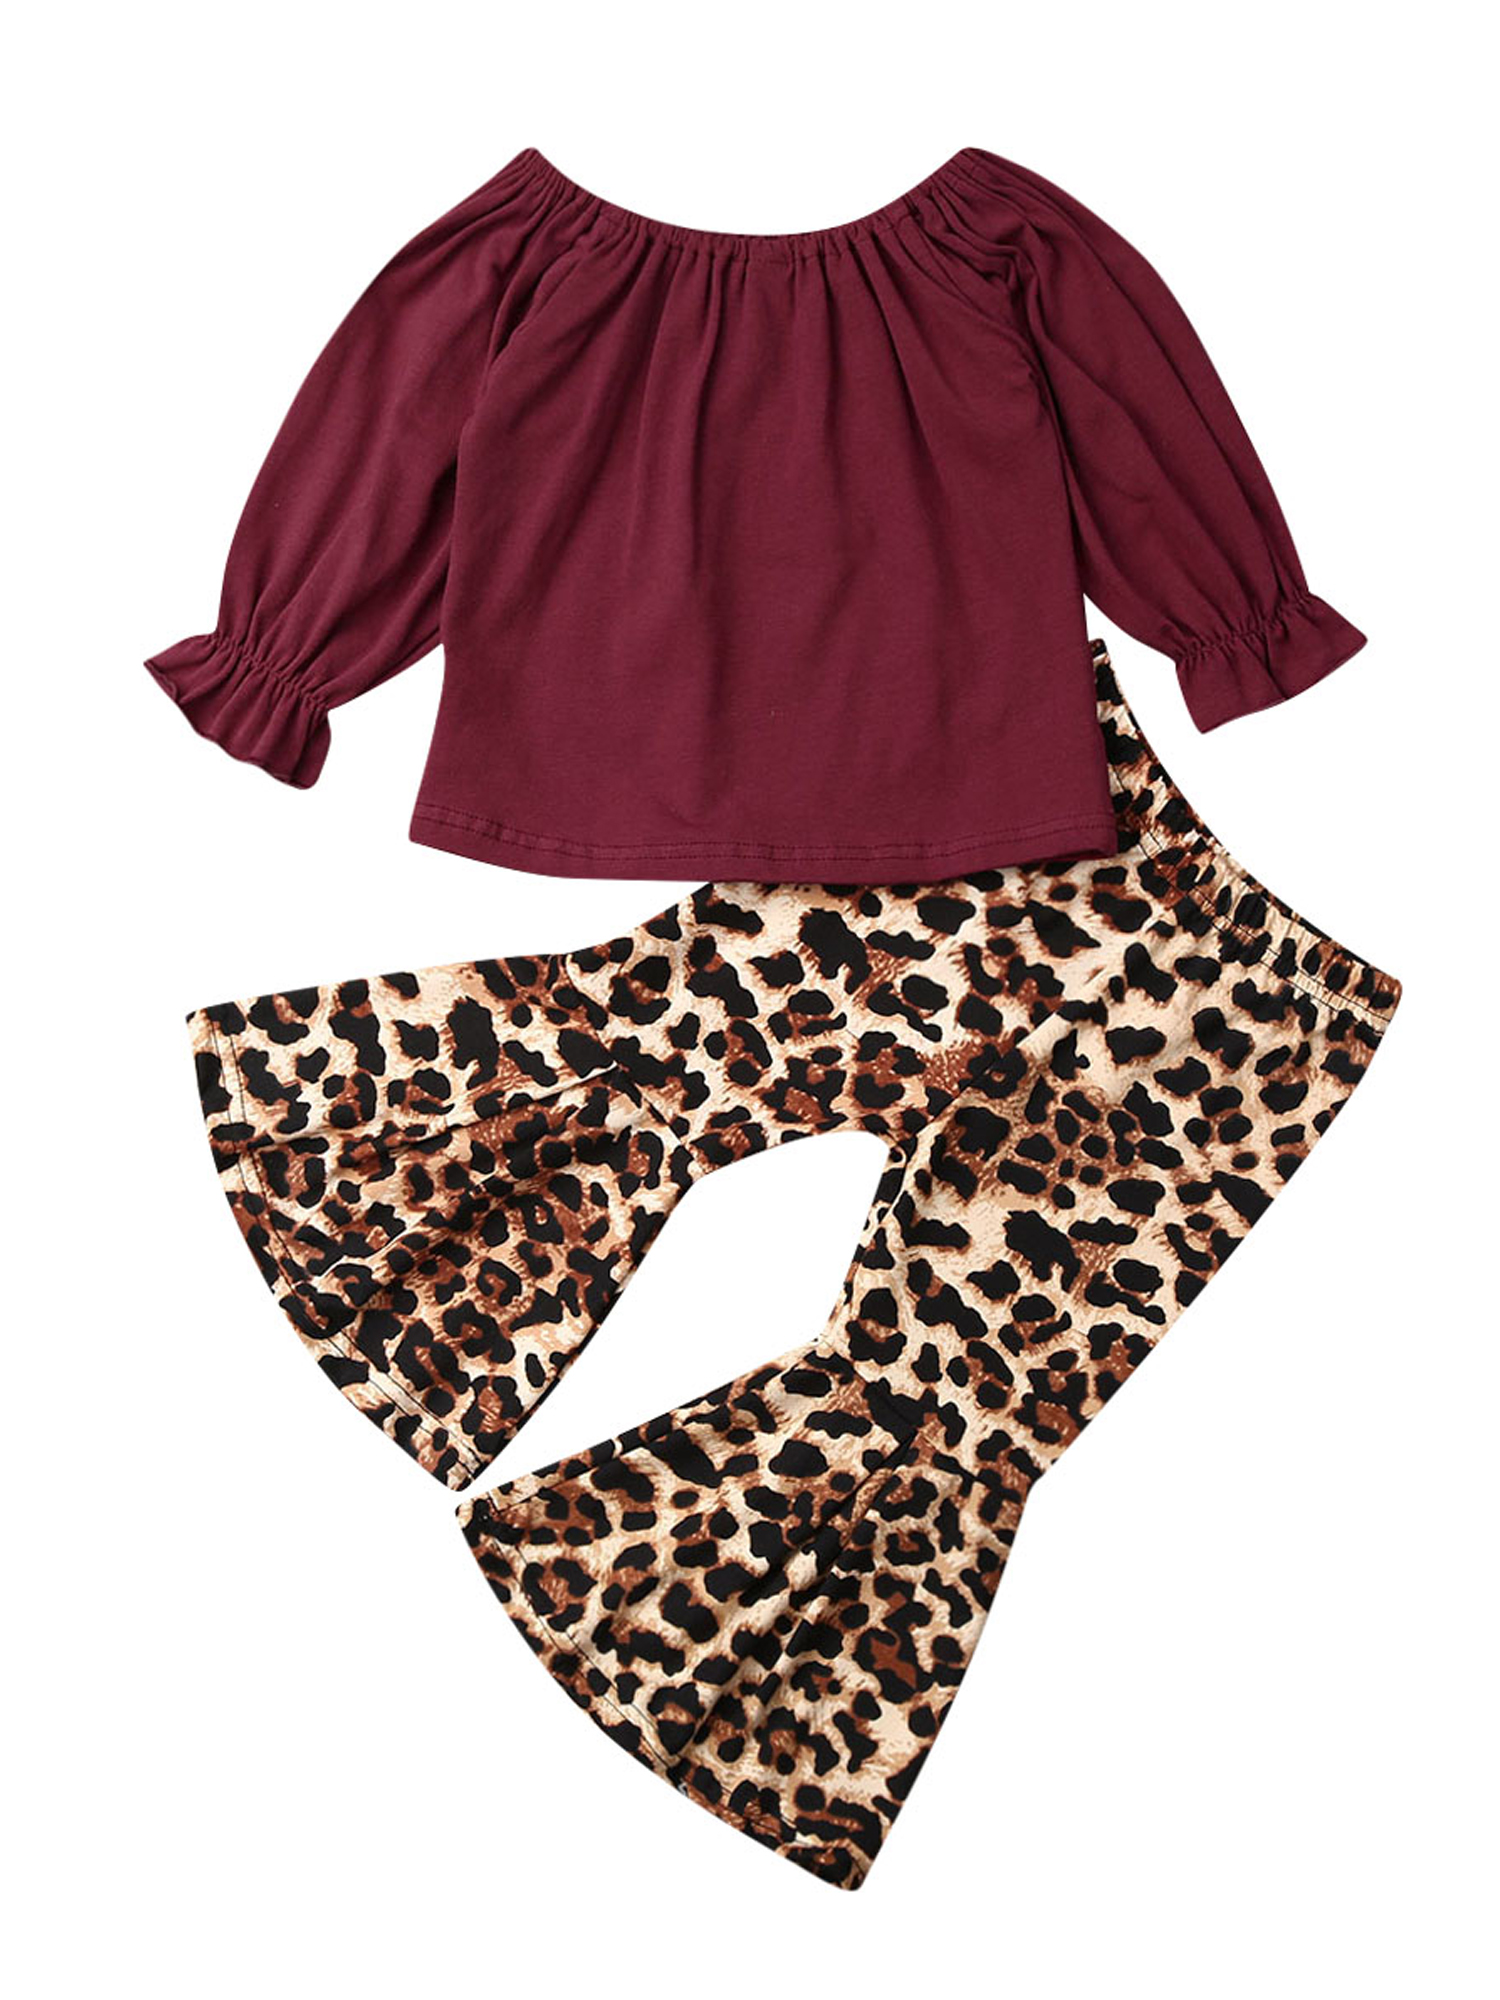 Toddler Baby Girls Sweatshirt Leopard//Tie Dye Casual Blouse Top Fashion Long Sleeve Pullover Shirt Fall Winter Outfit